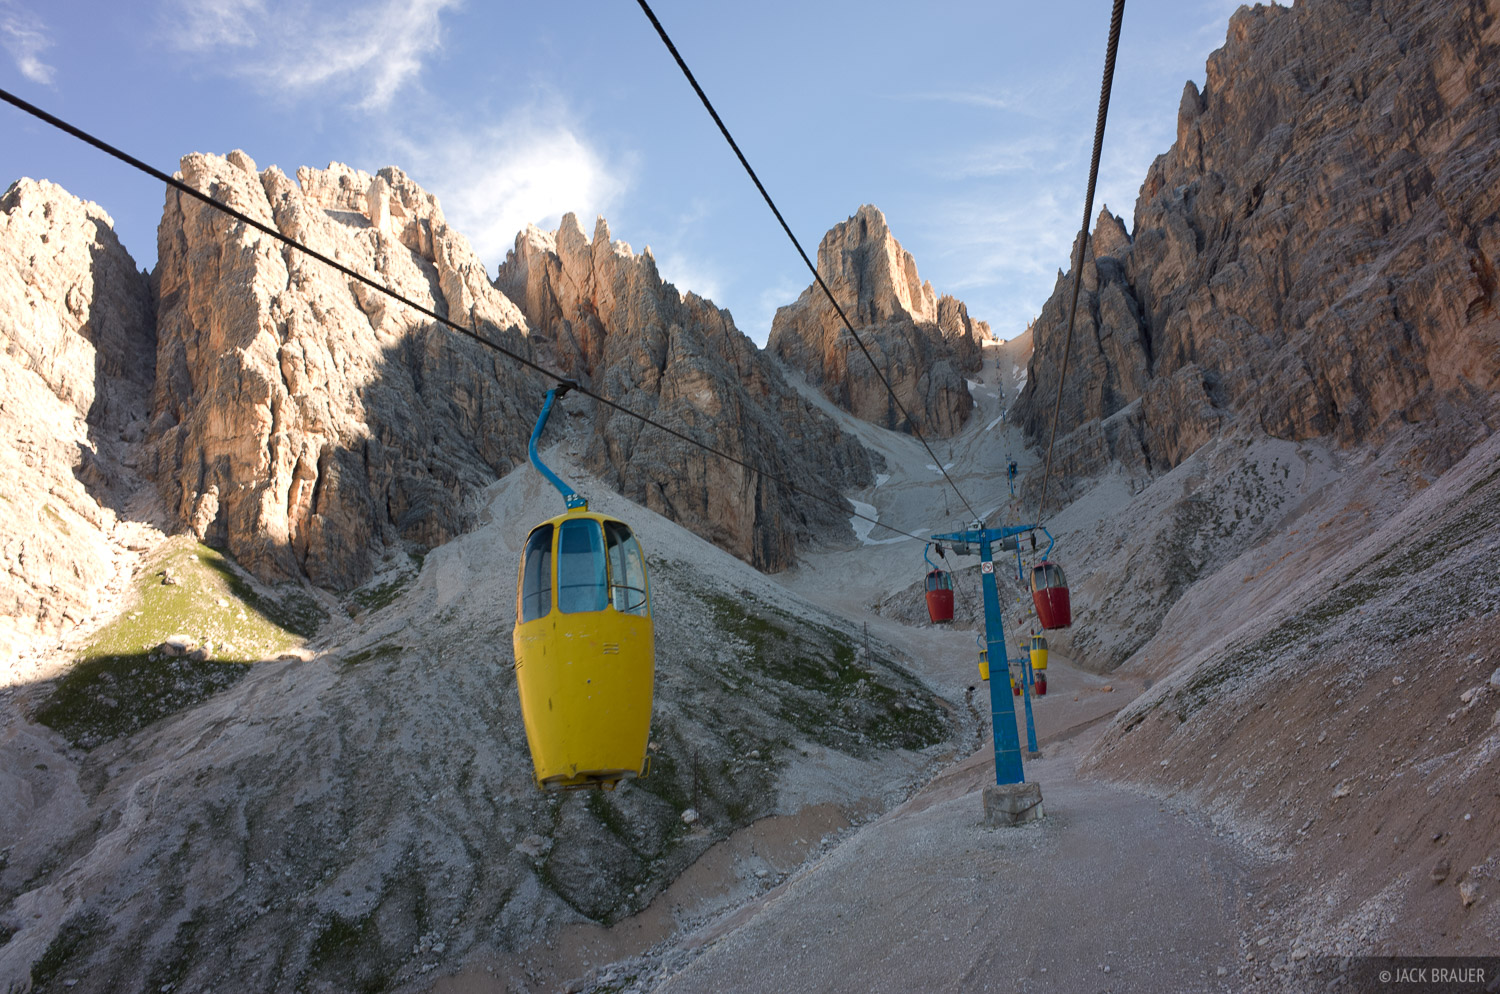 Dolomites, Italy, Cristallo, gondola, Alps, photo